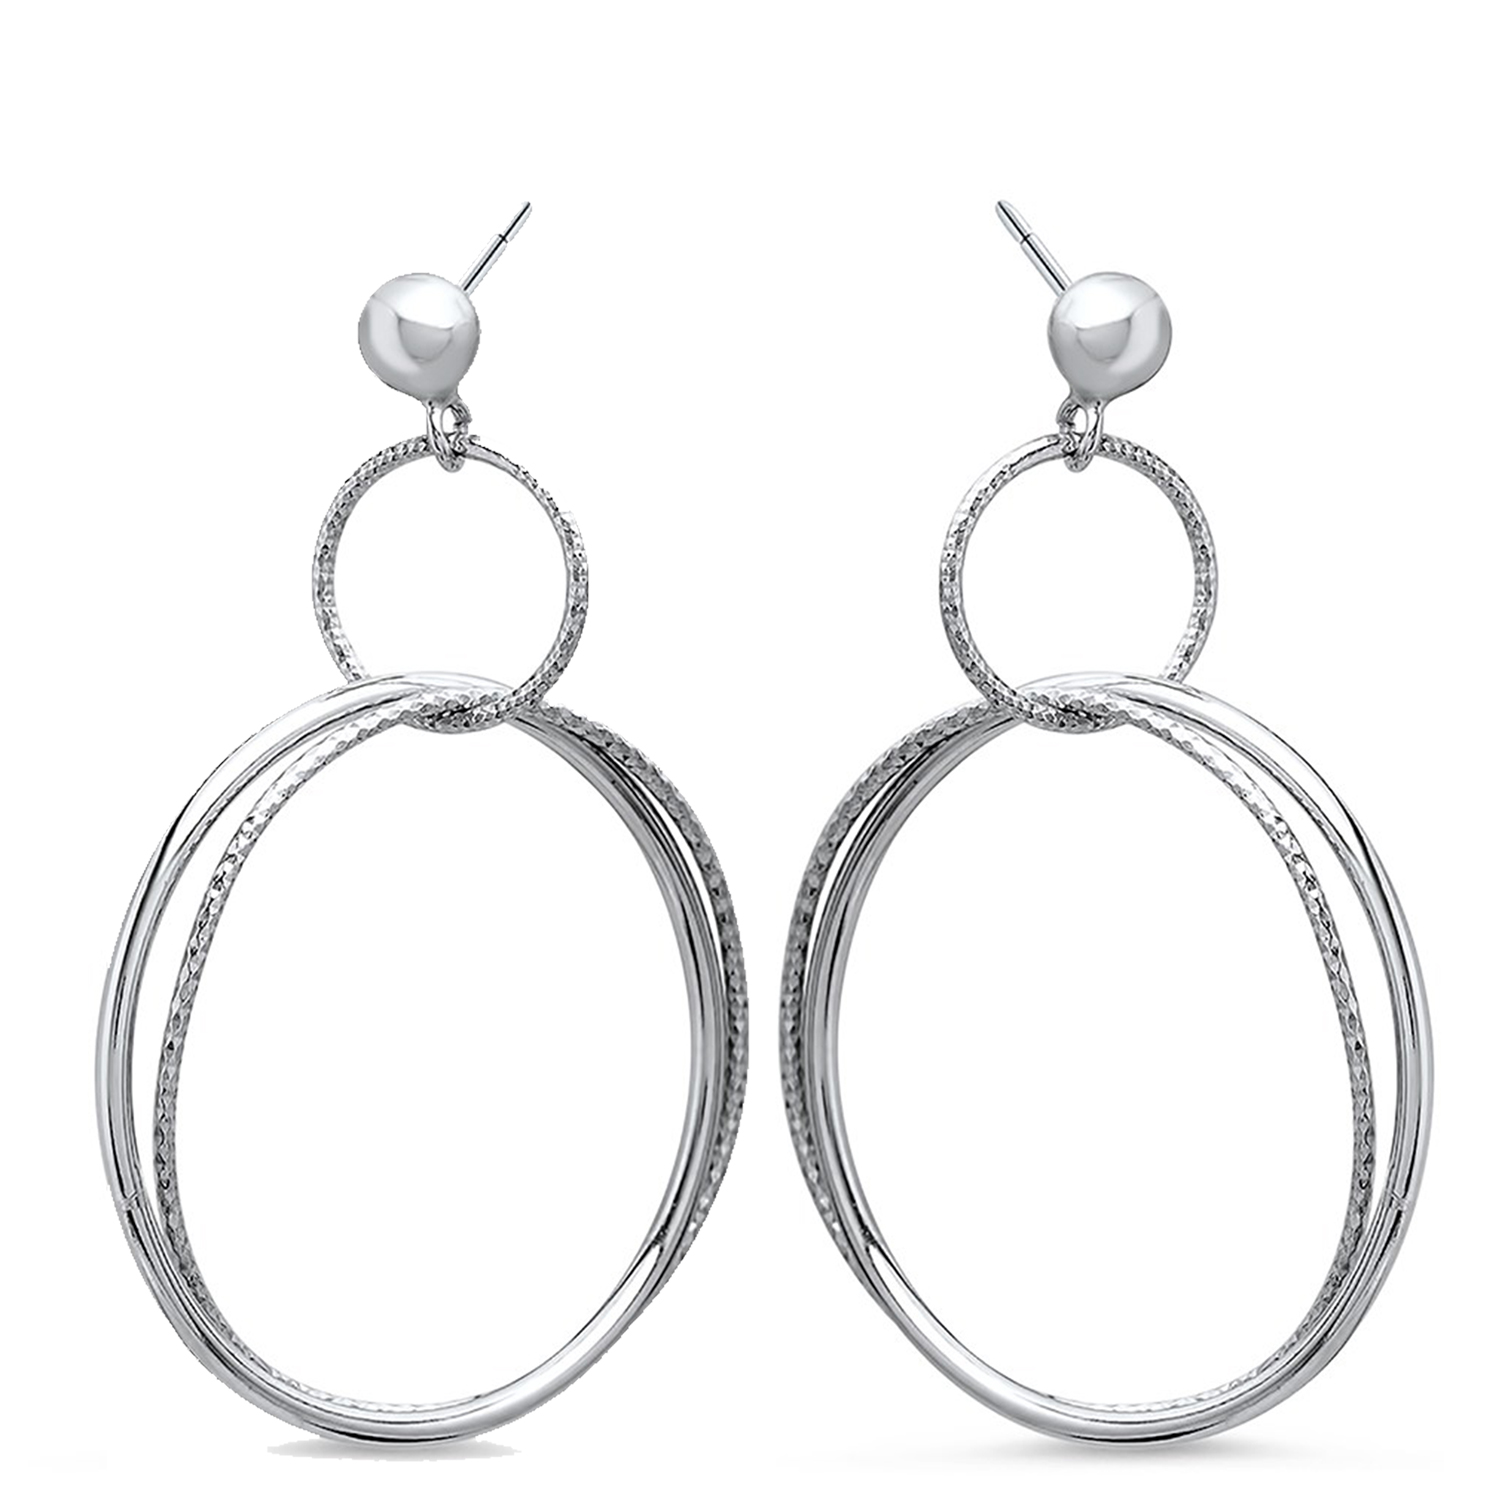 Sterling Silver Polished & Textured Dangle Hoop Earrings